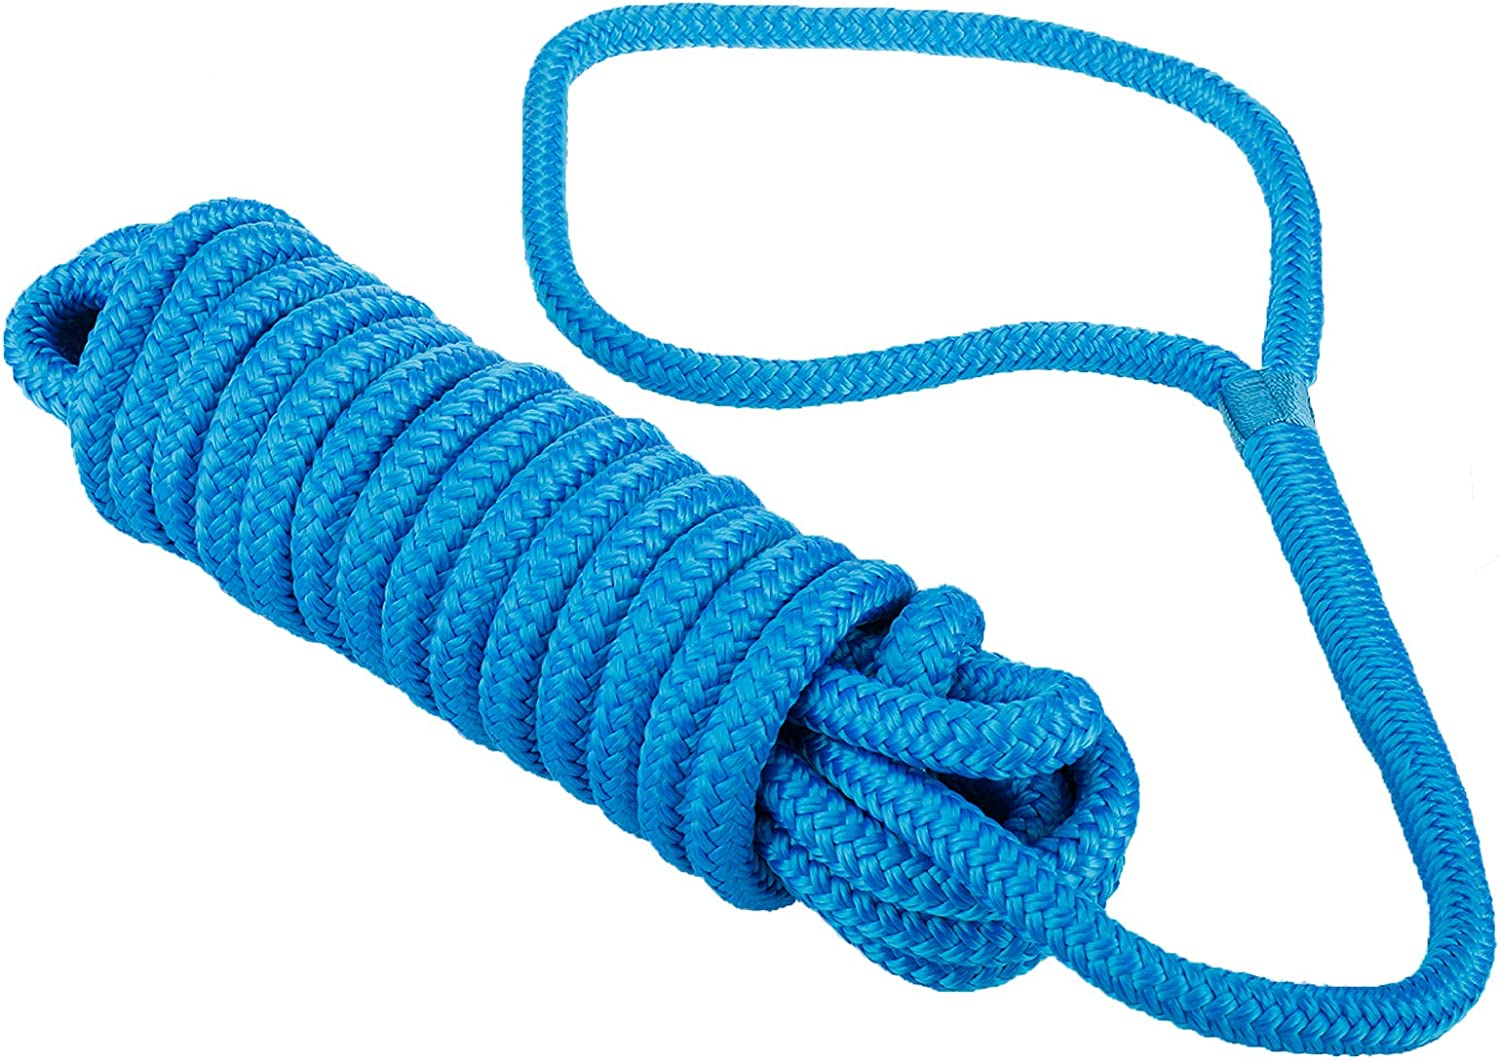 Details about  /Amarine Made Boat Marine Double Braided Nylon Dock Line Mooring Rope Anchor Line